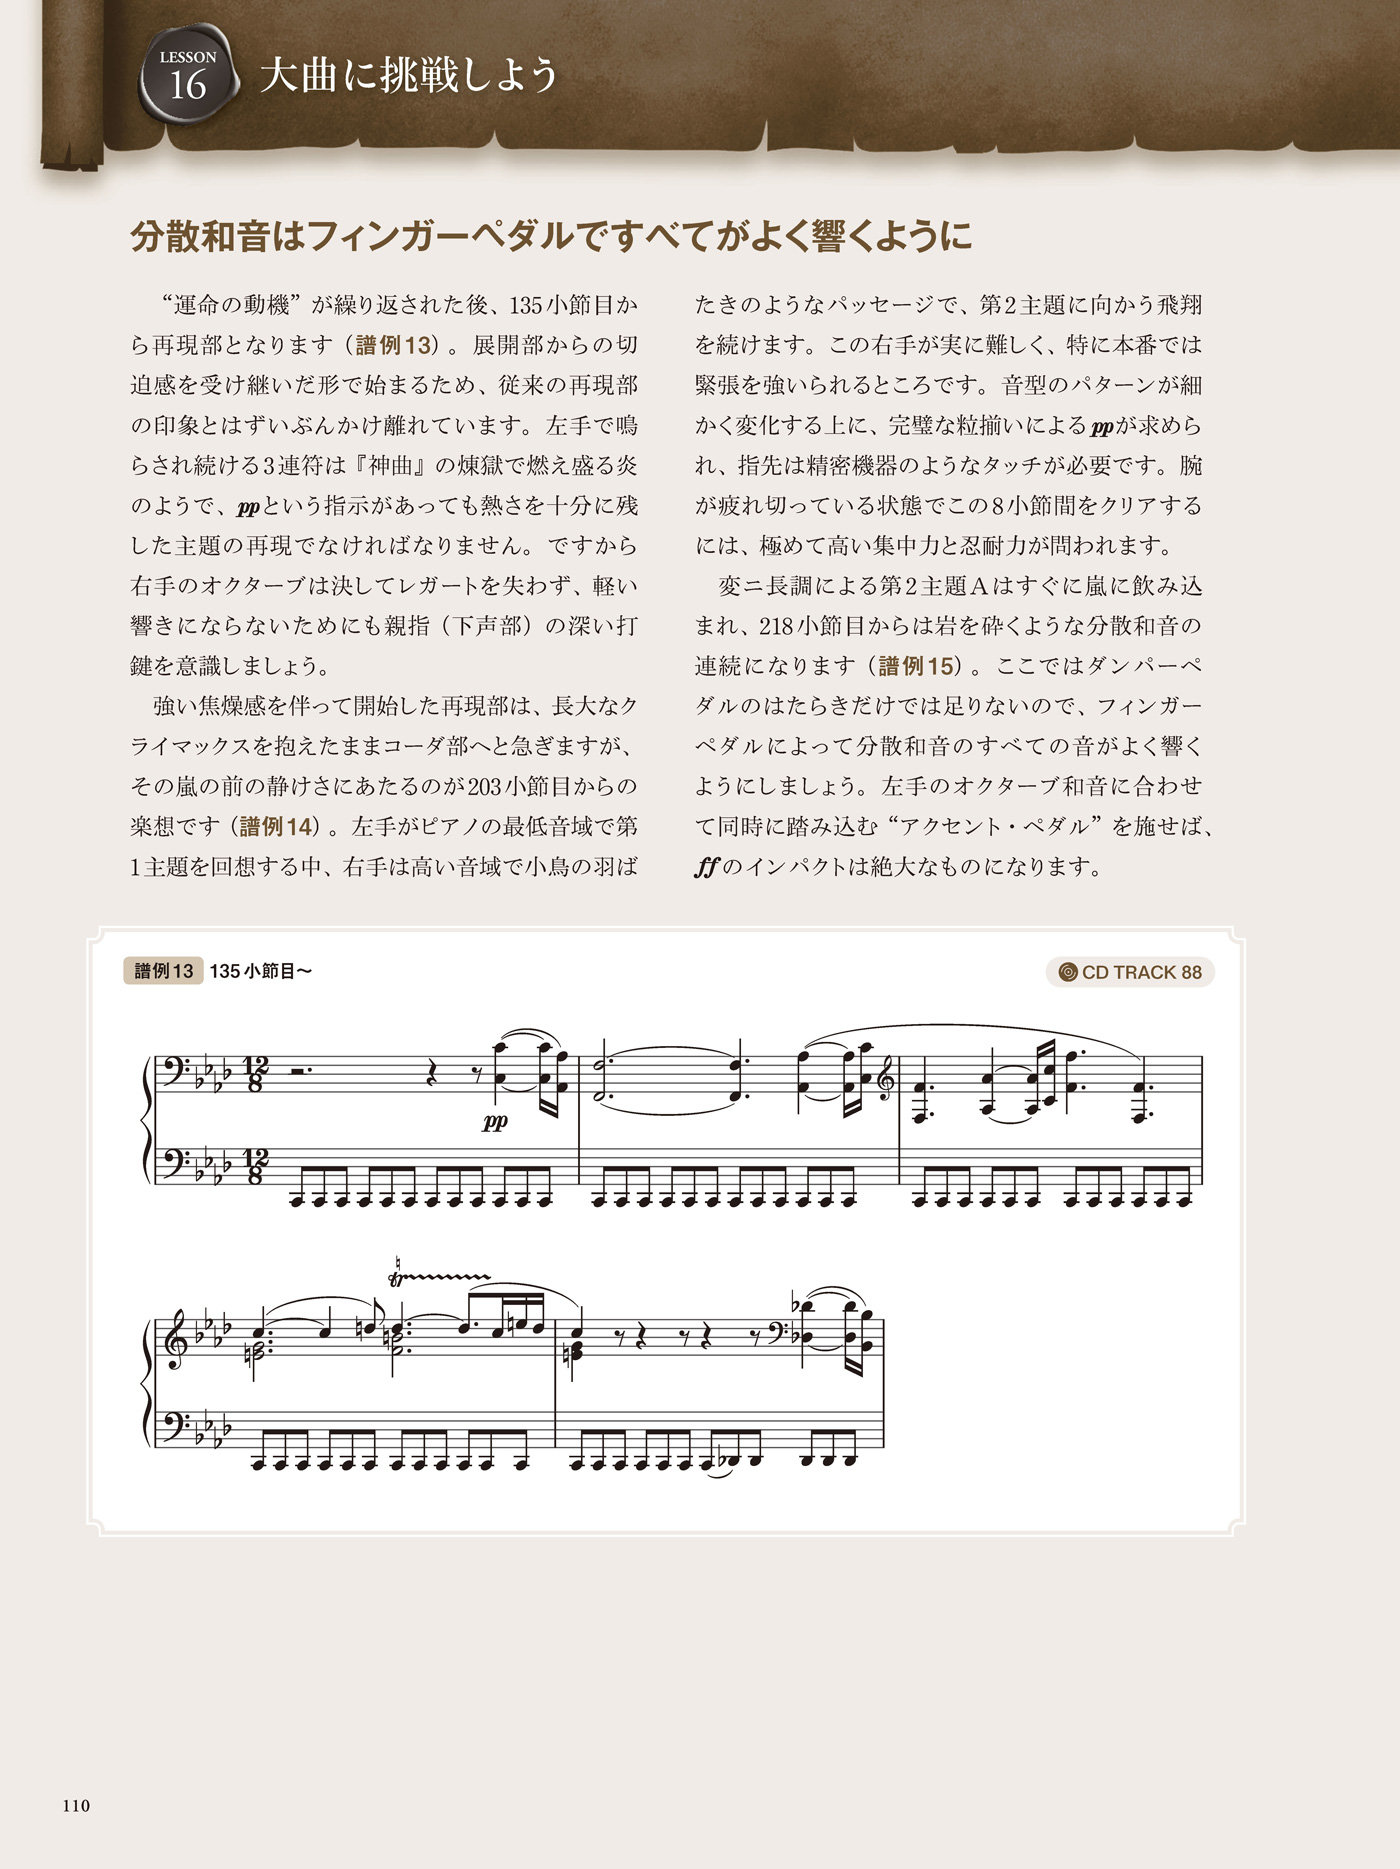 after_ClassicPiano_p110.jpg